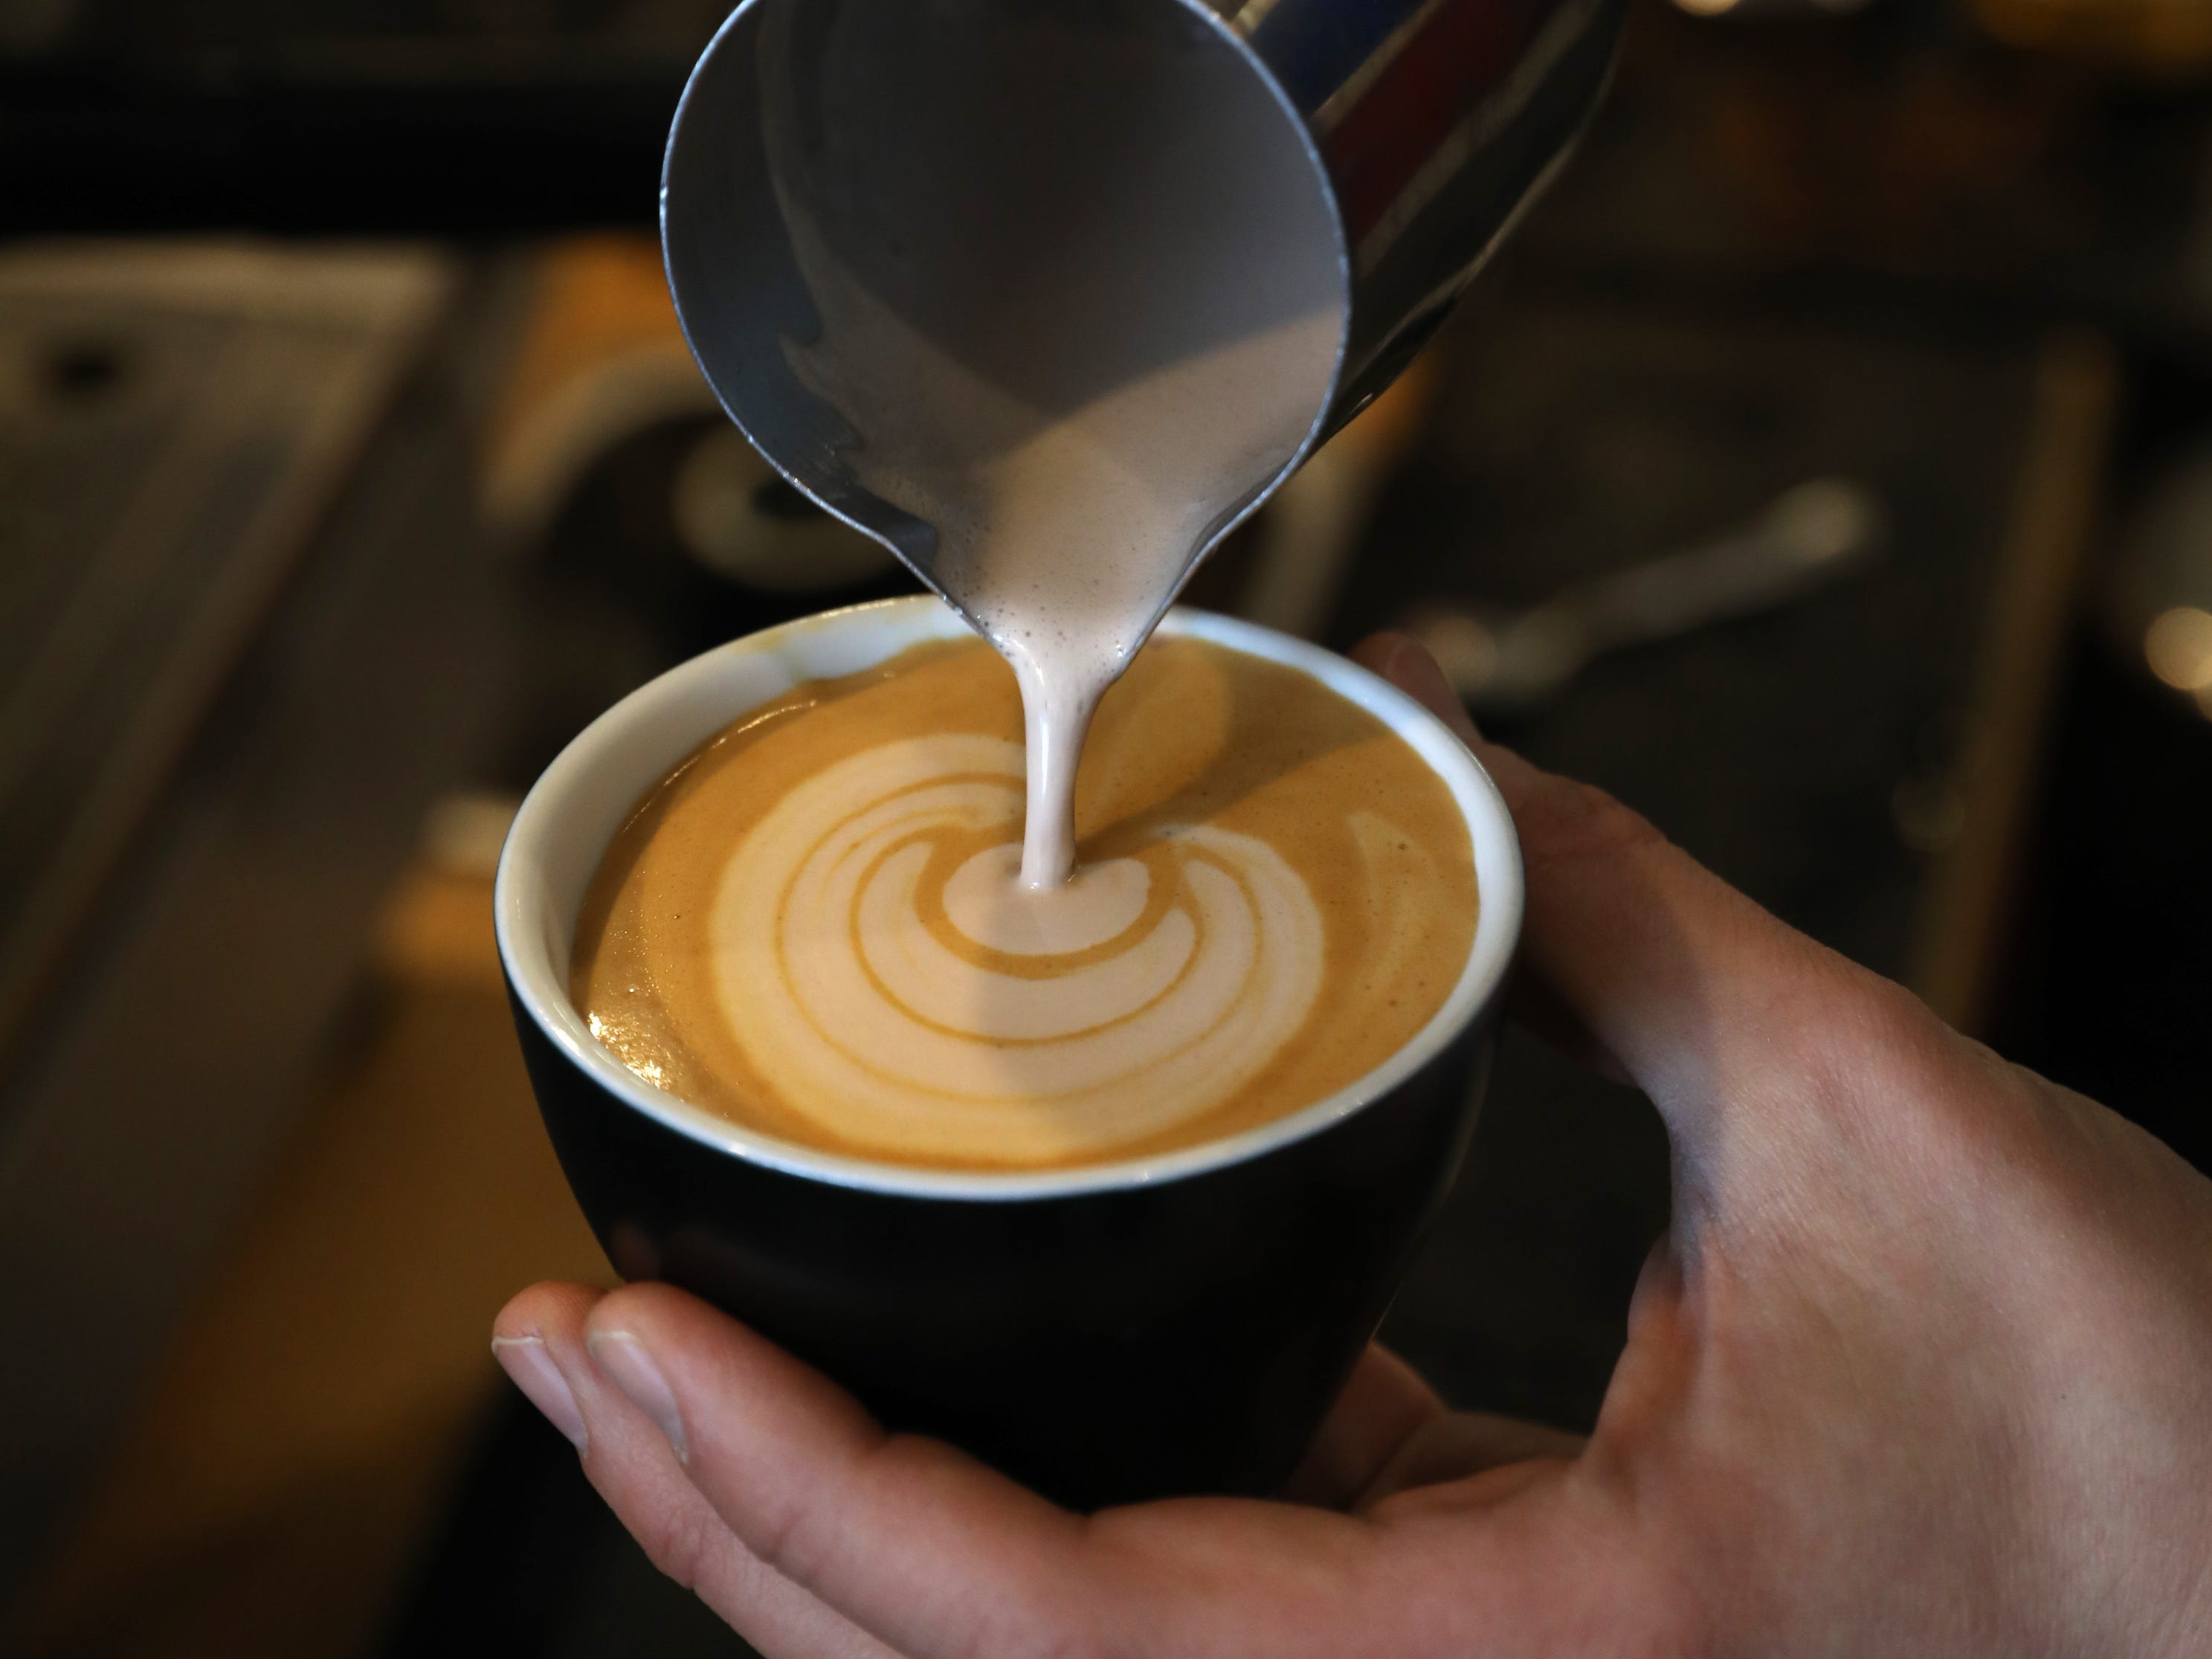 Adam Solomon, bar manager, puts the finishing pour on a chocolate milk cappuccino.